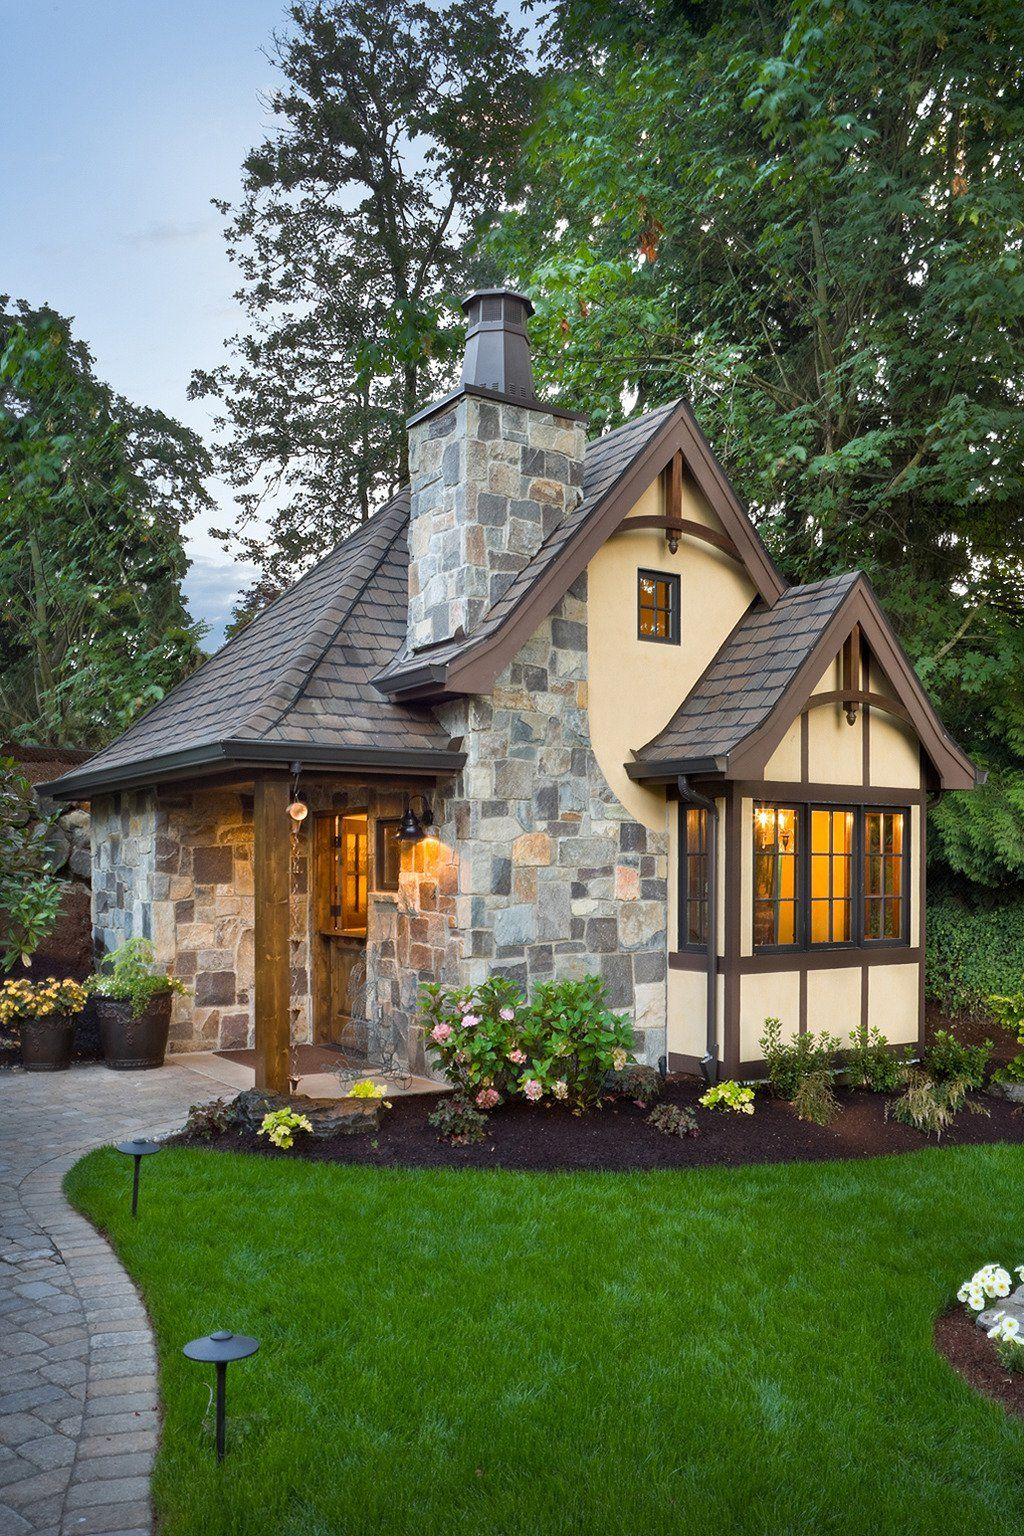 12 Surprising Granny Pod Ideas For The Backyard Cottage House